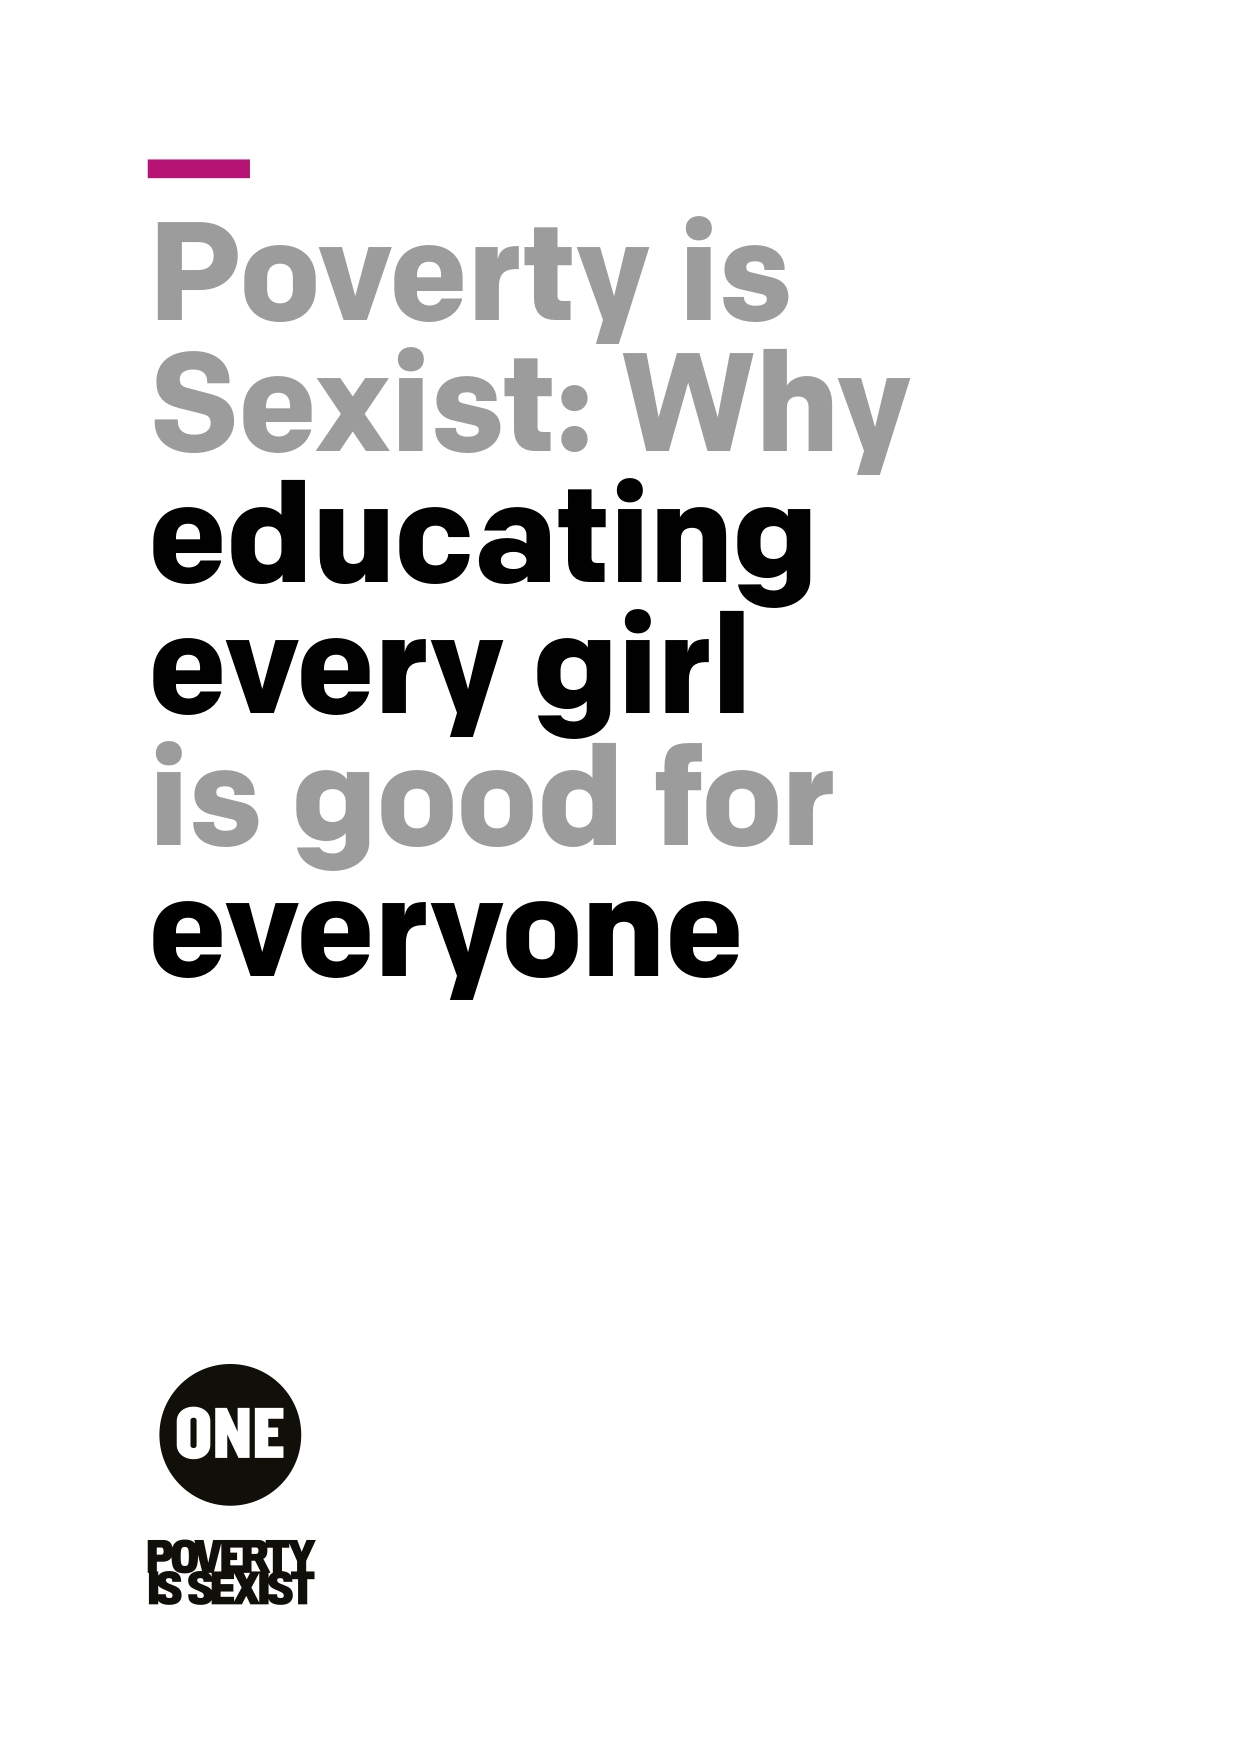 Poverty is Sexist: Why educating every girl is good for everyone